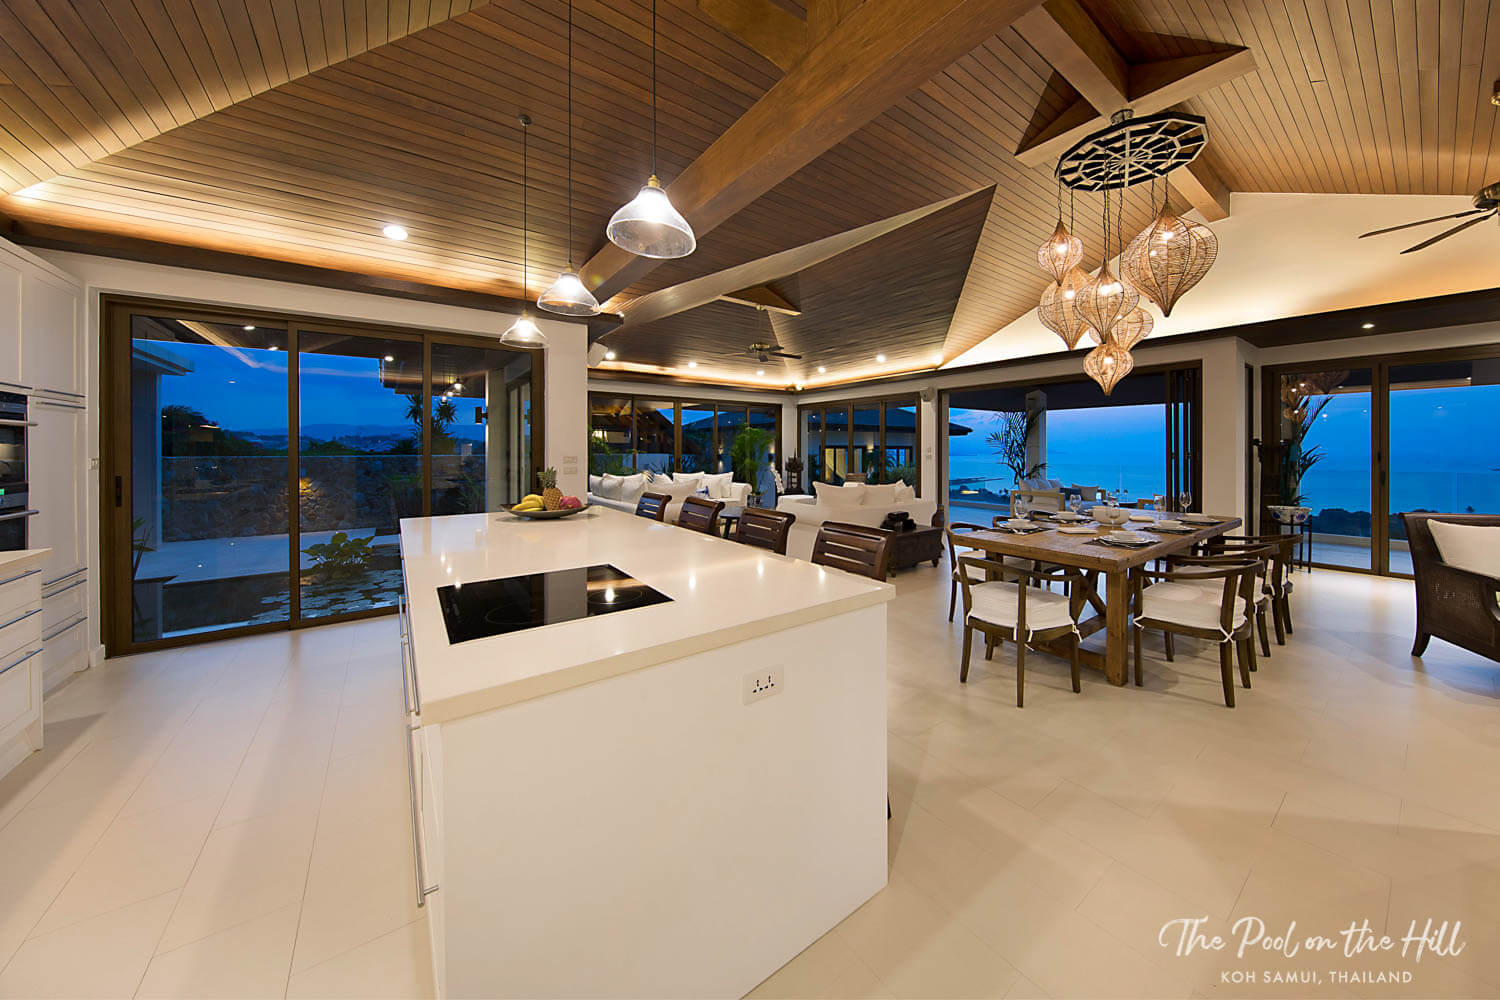 Koh Samui villa: Discover your in-villa dining options at The Pool on the Hill – Dinner options include a private Thai chef or a barbeque at home in your villa.